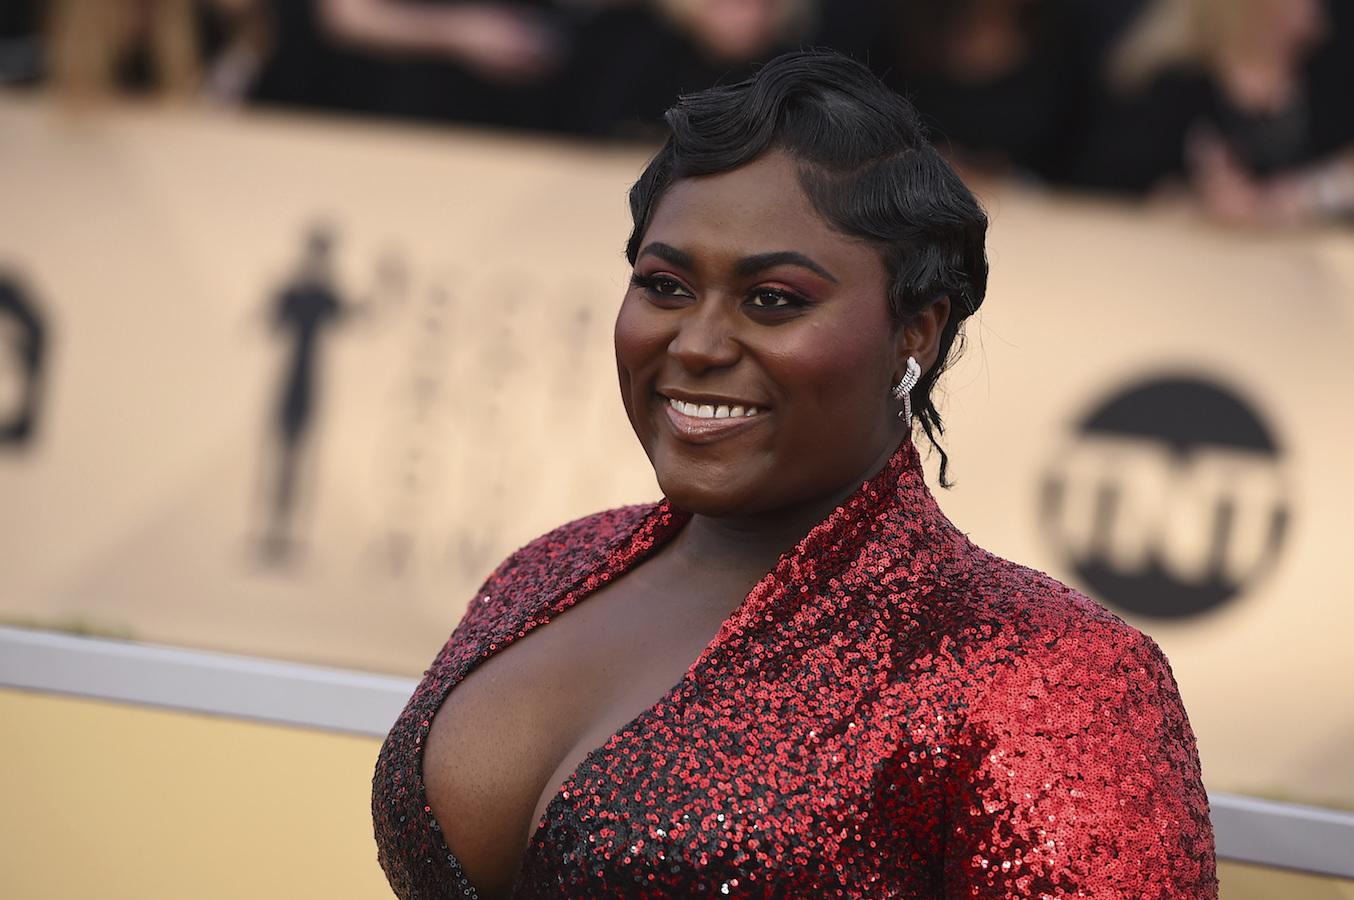 <div class='meta'><div class='origin-logo' data-origin='AP'></div><span class='caption-text' data-credit='Jordan Strauss/Invision/AP'>Danielle Brooks arrives at the 24th annual Screen Actors Guild Awards at the Shrine Auditorium & Expo Hall on Sunday, Jan. 21, 2018, in Los Angeles.</span></div>